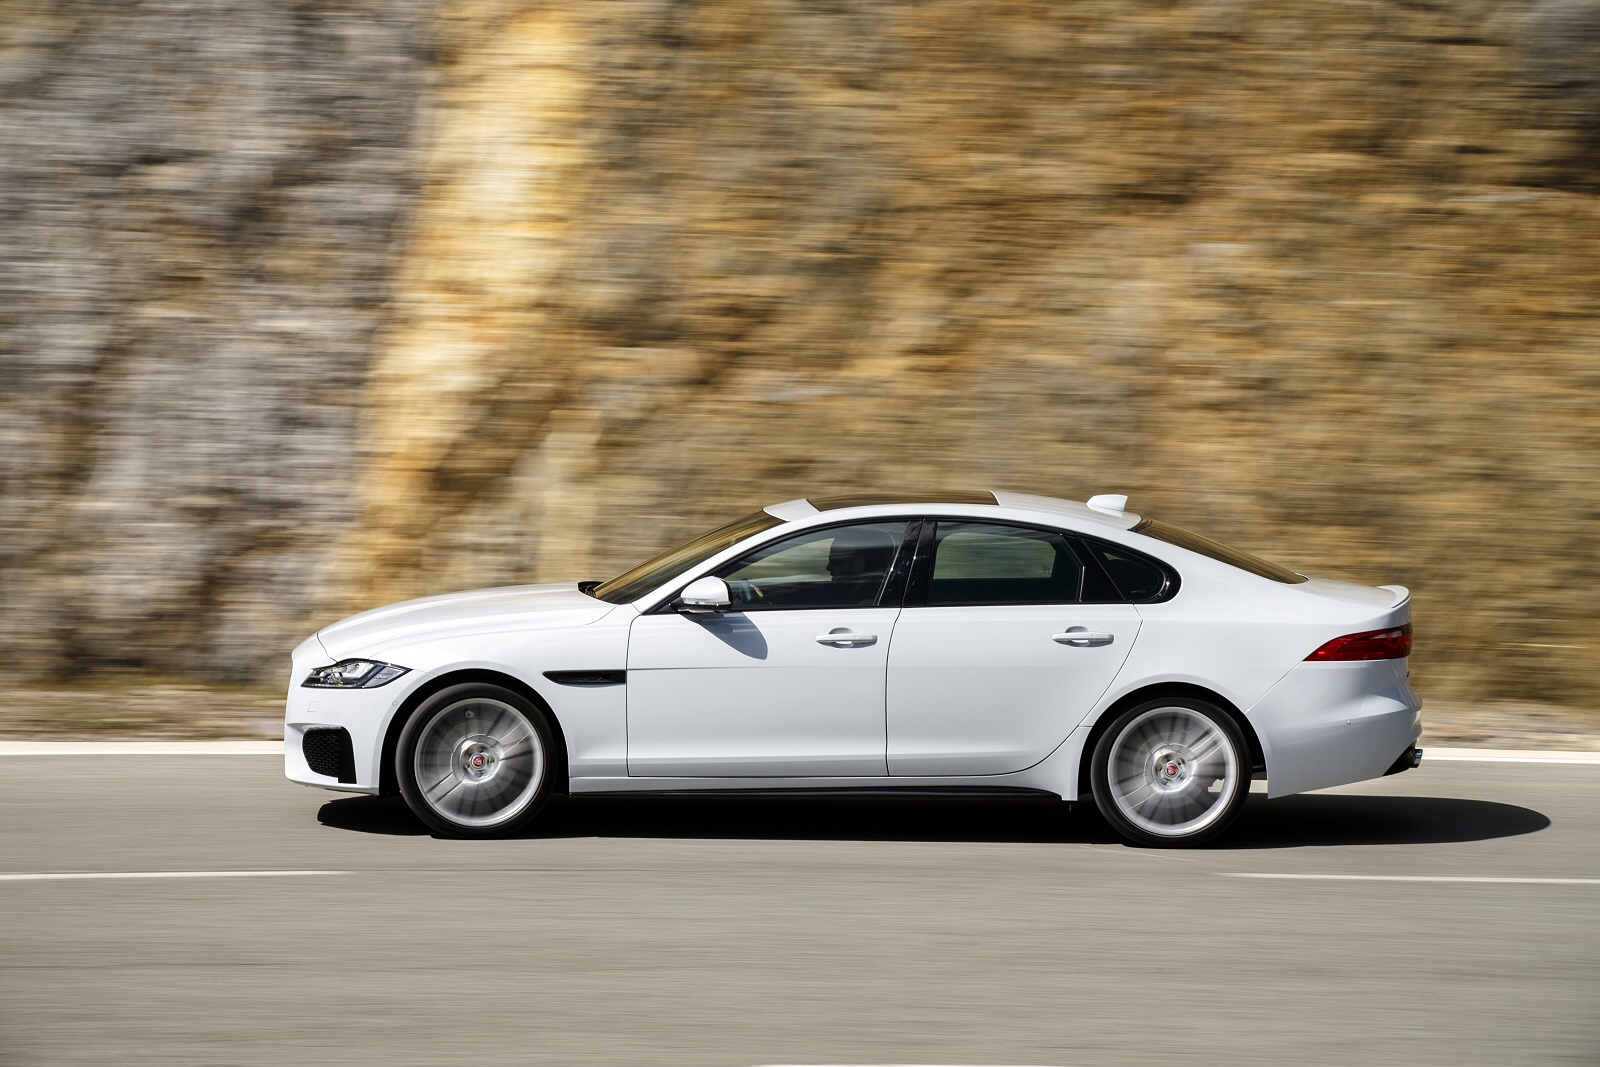 Business Lease Car Deals Jaguar Lease Deals What Jaguars Are The Best Value For